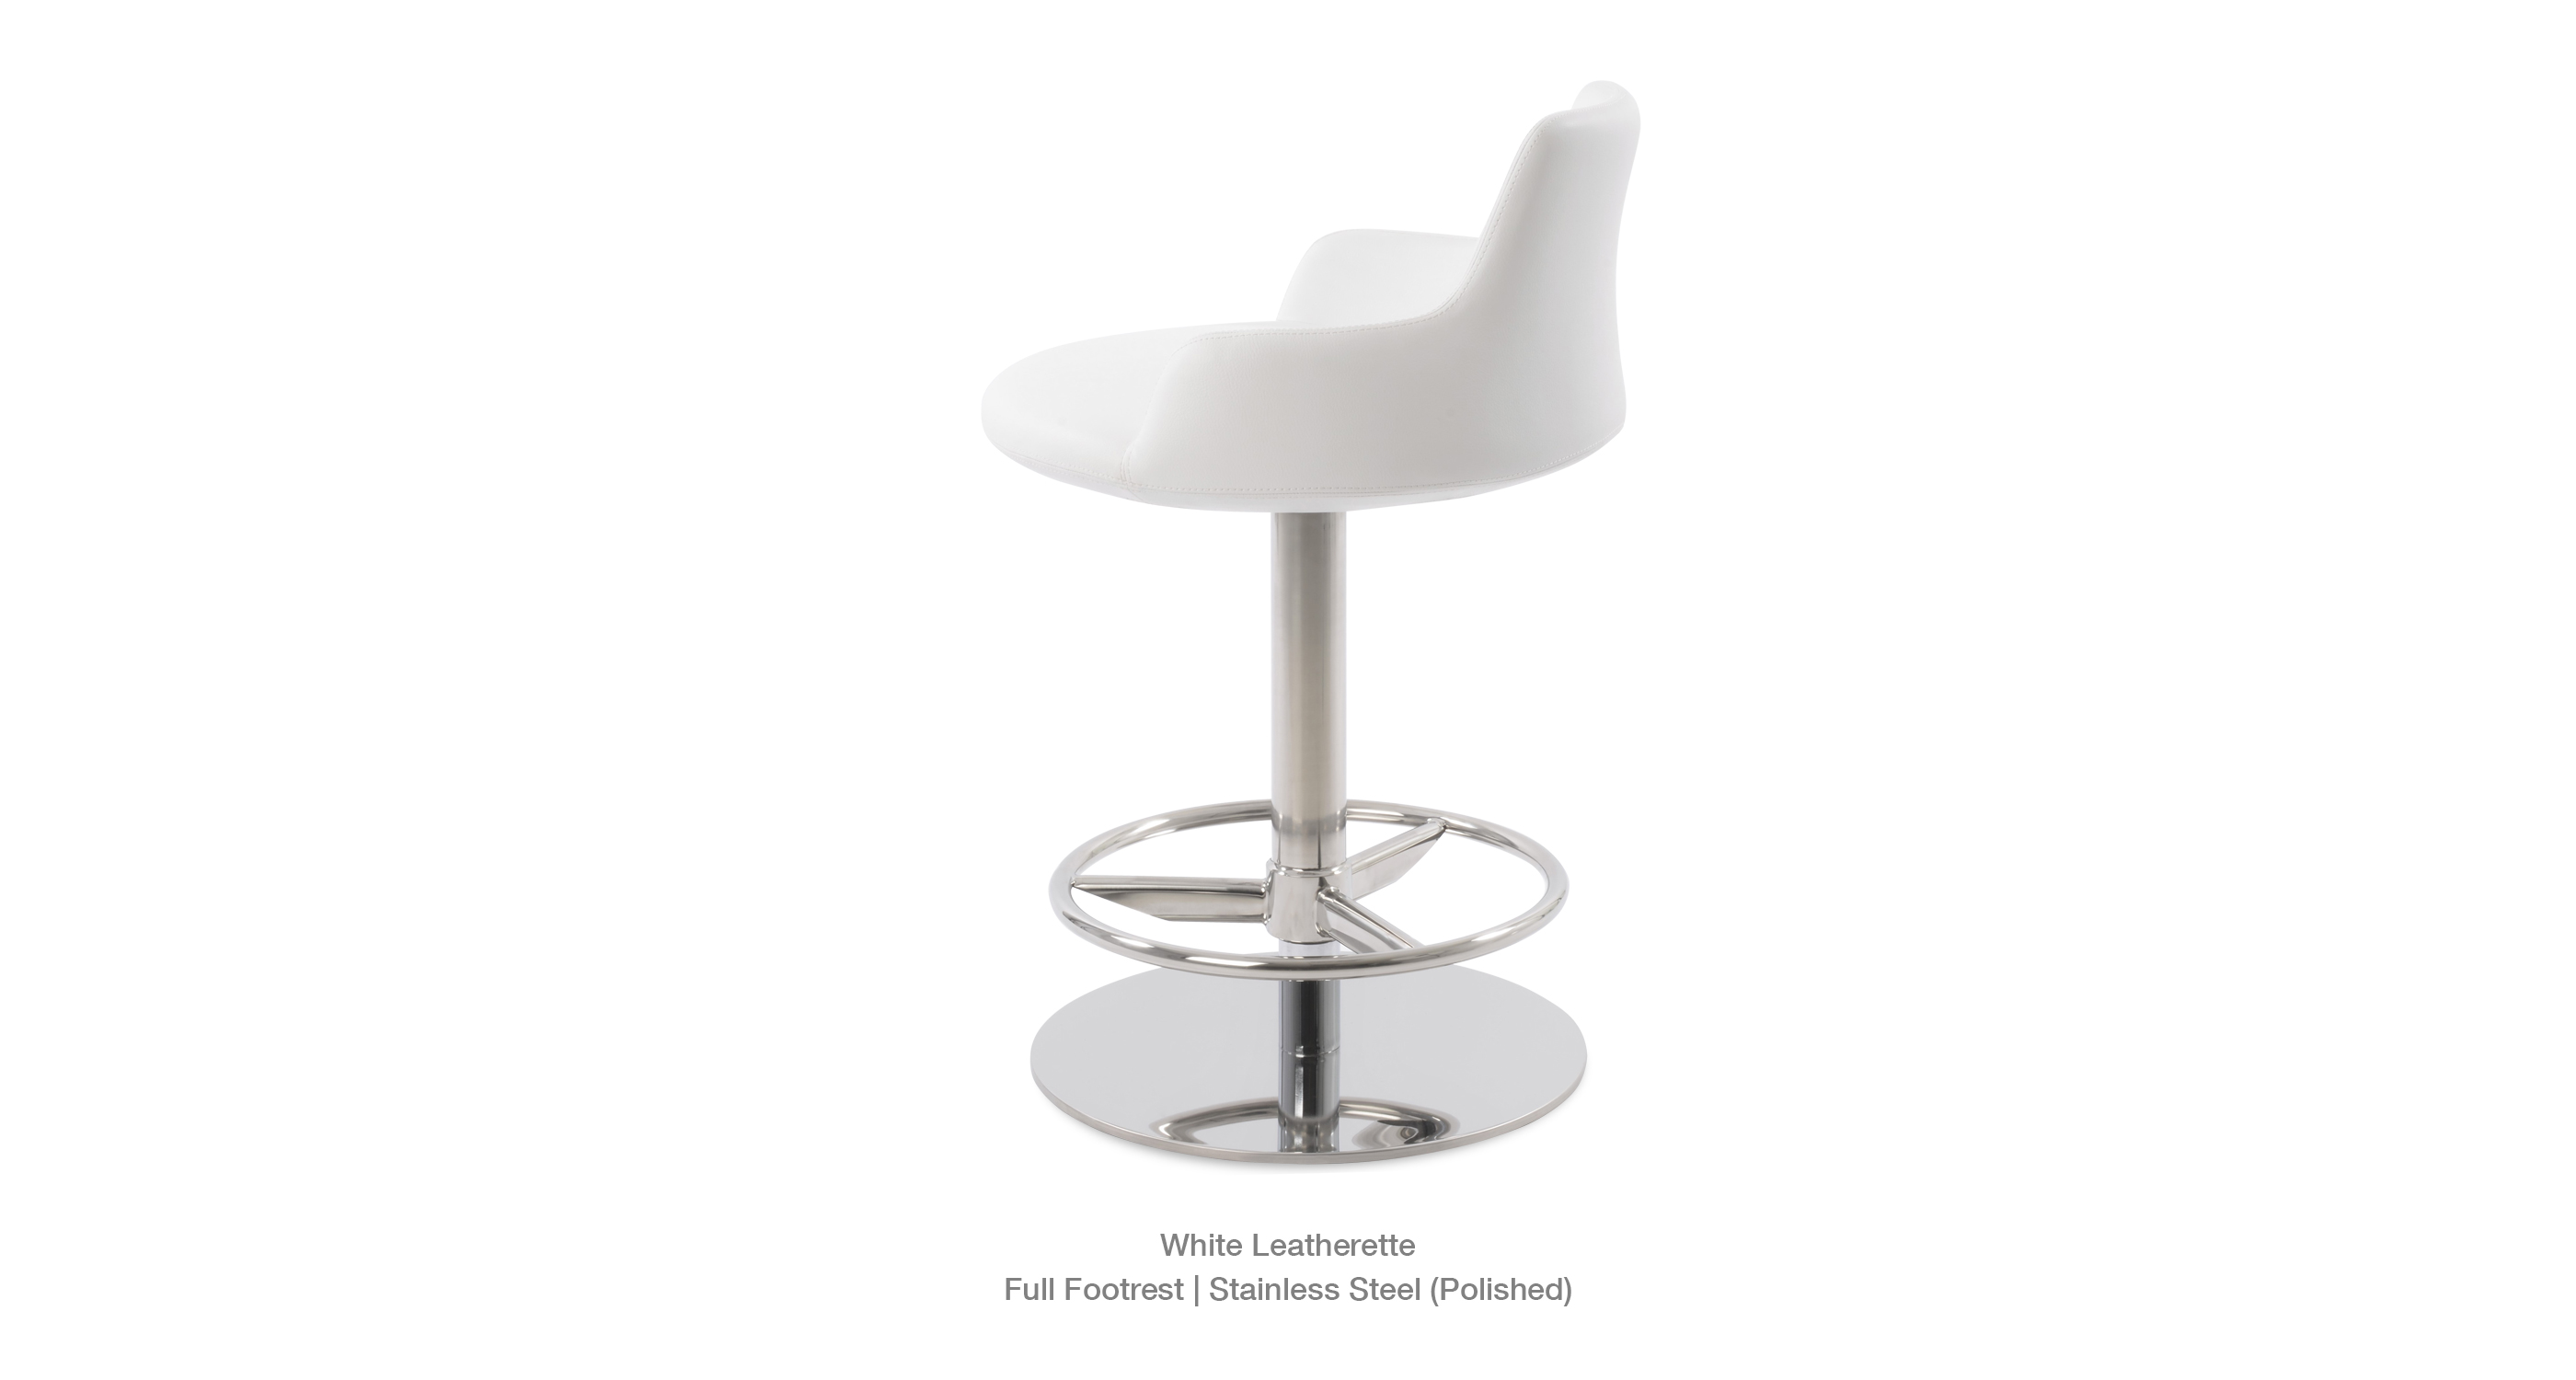 white leatherette - full footrest